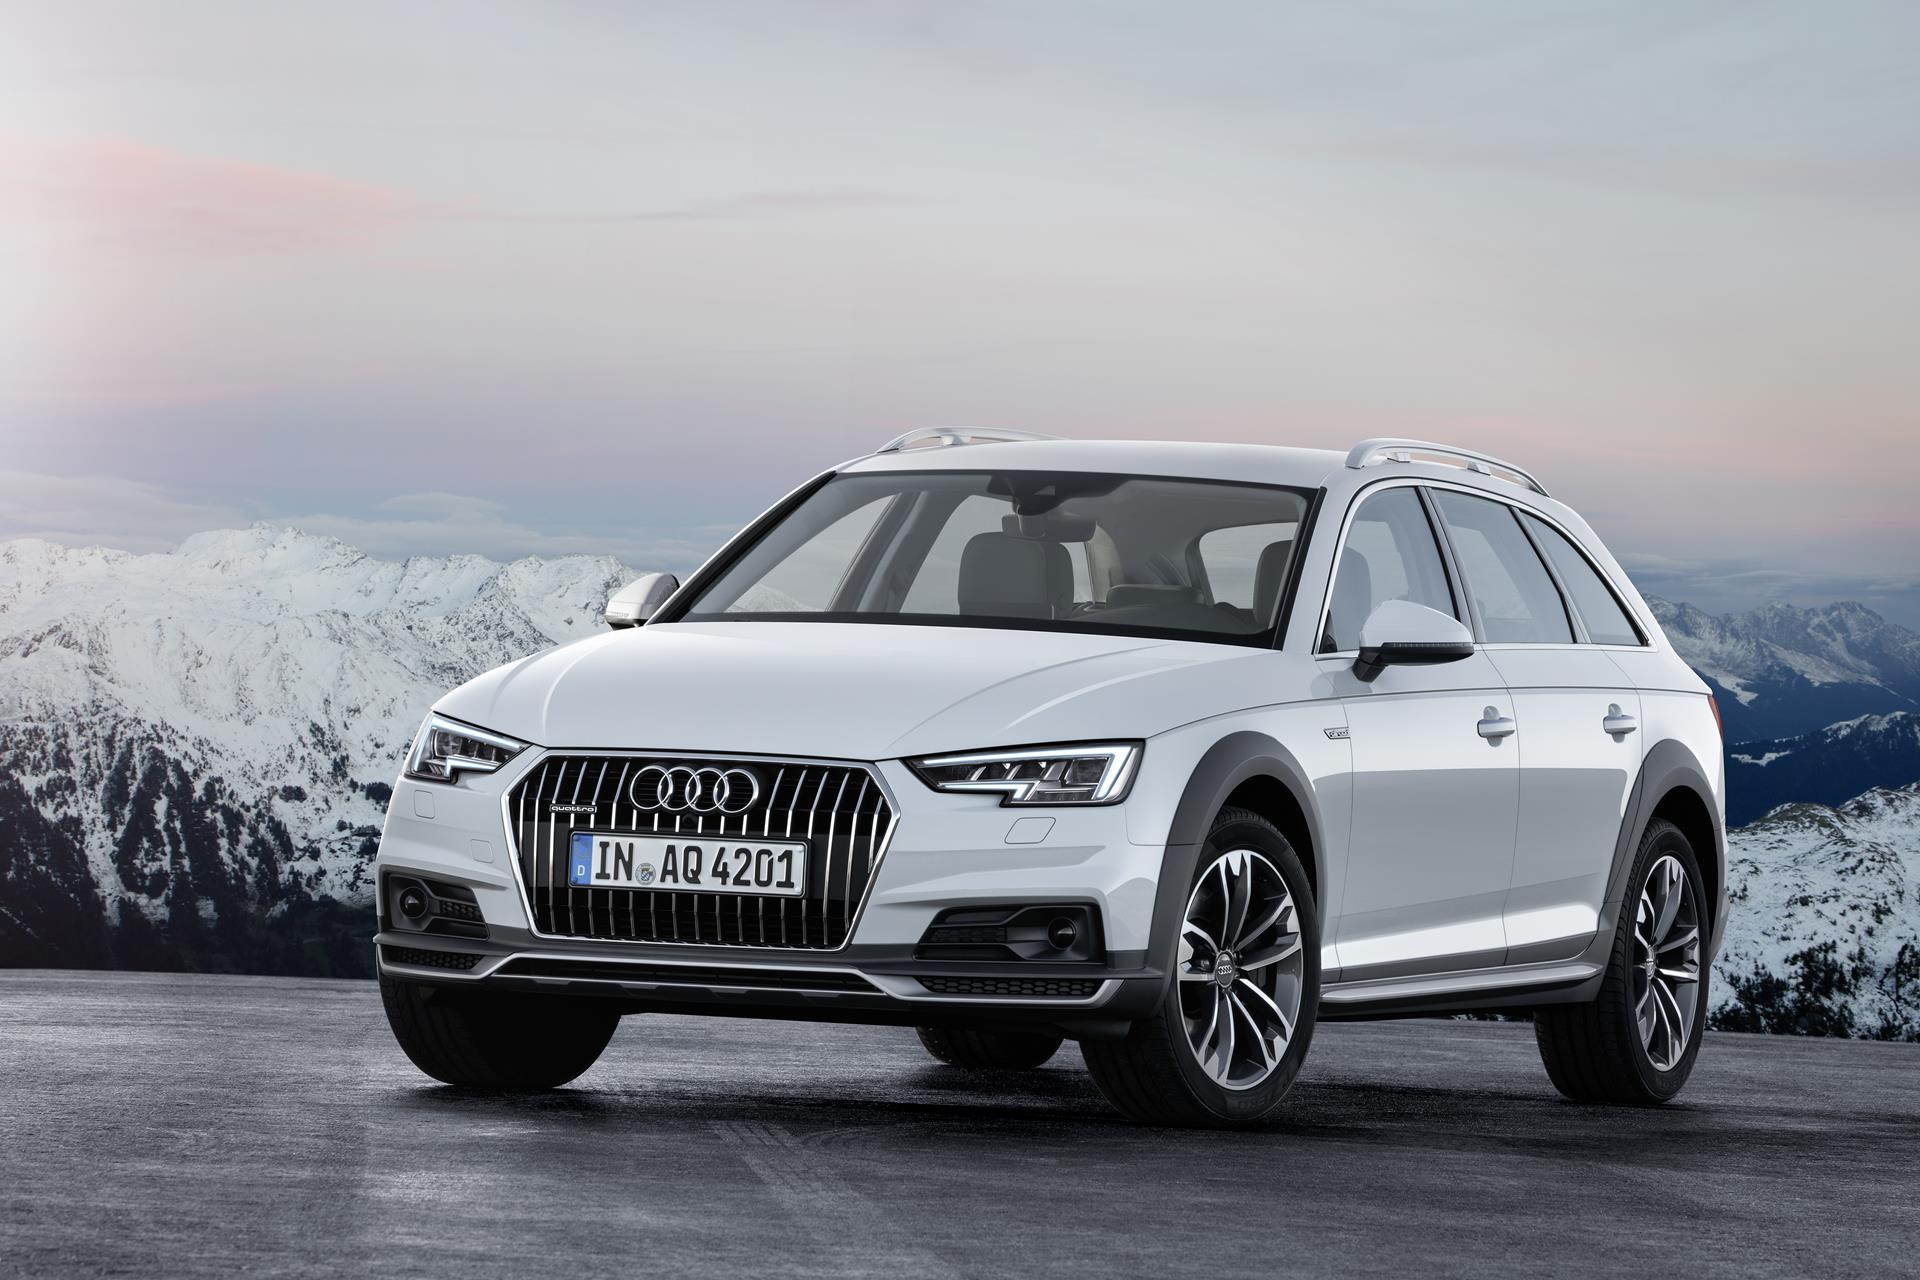 2017 audi a4 allroad quattro news and information. Black Bedroom Furniture Sets. Home Design Ideas